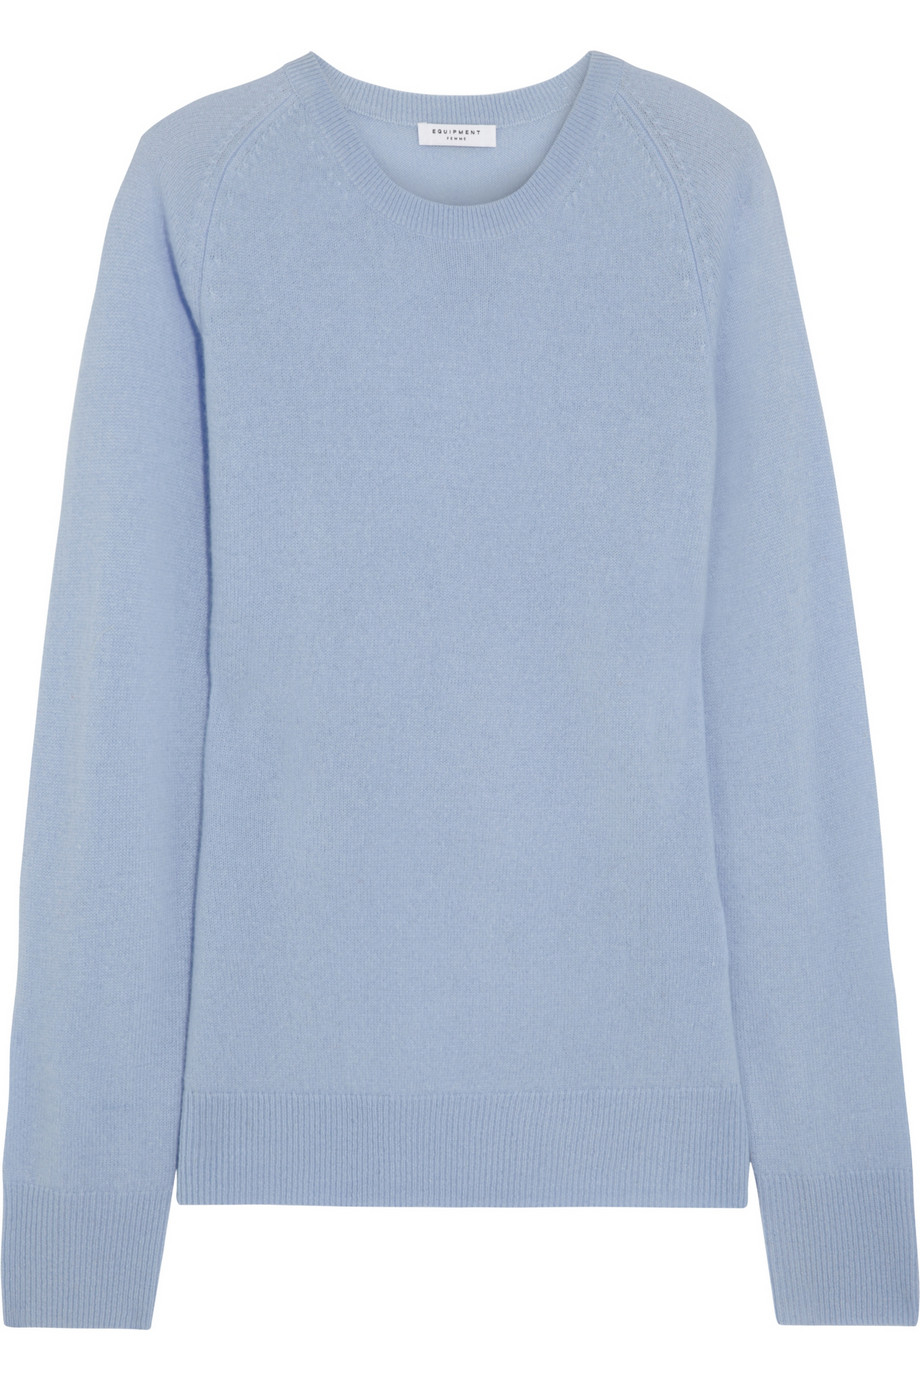 Equipment Sloane Cashmere Sweater in Blue | Lyst